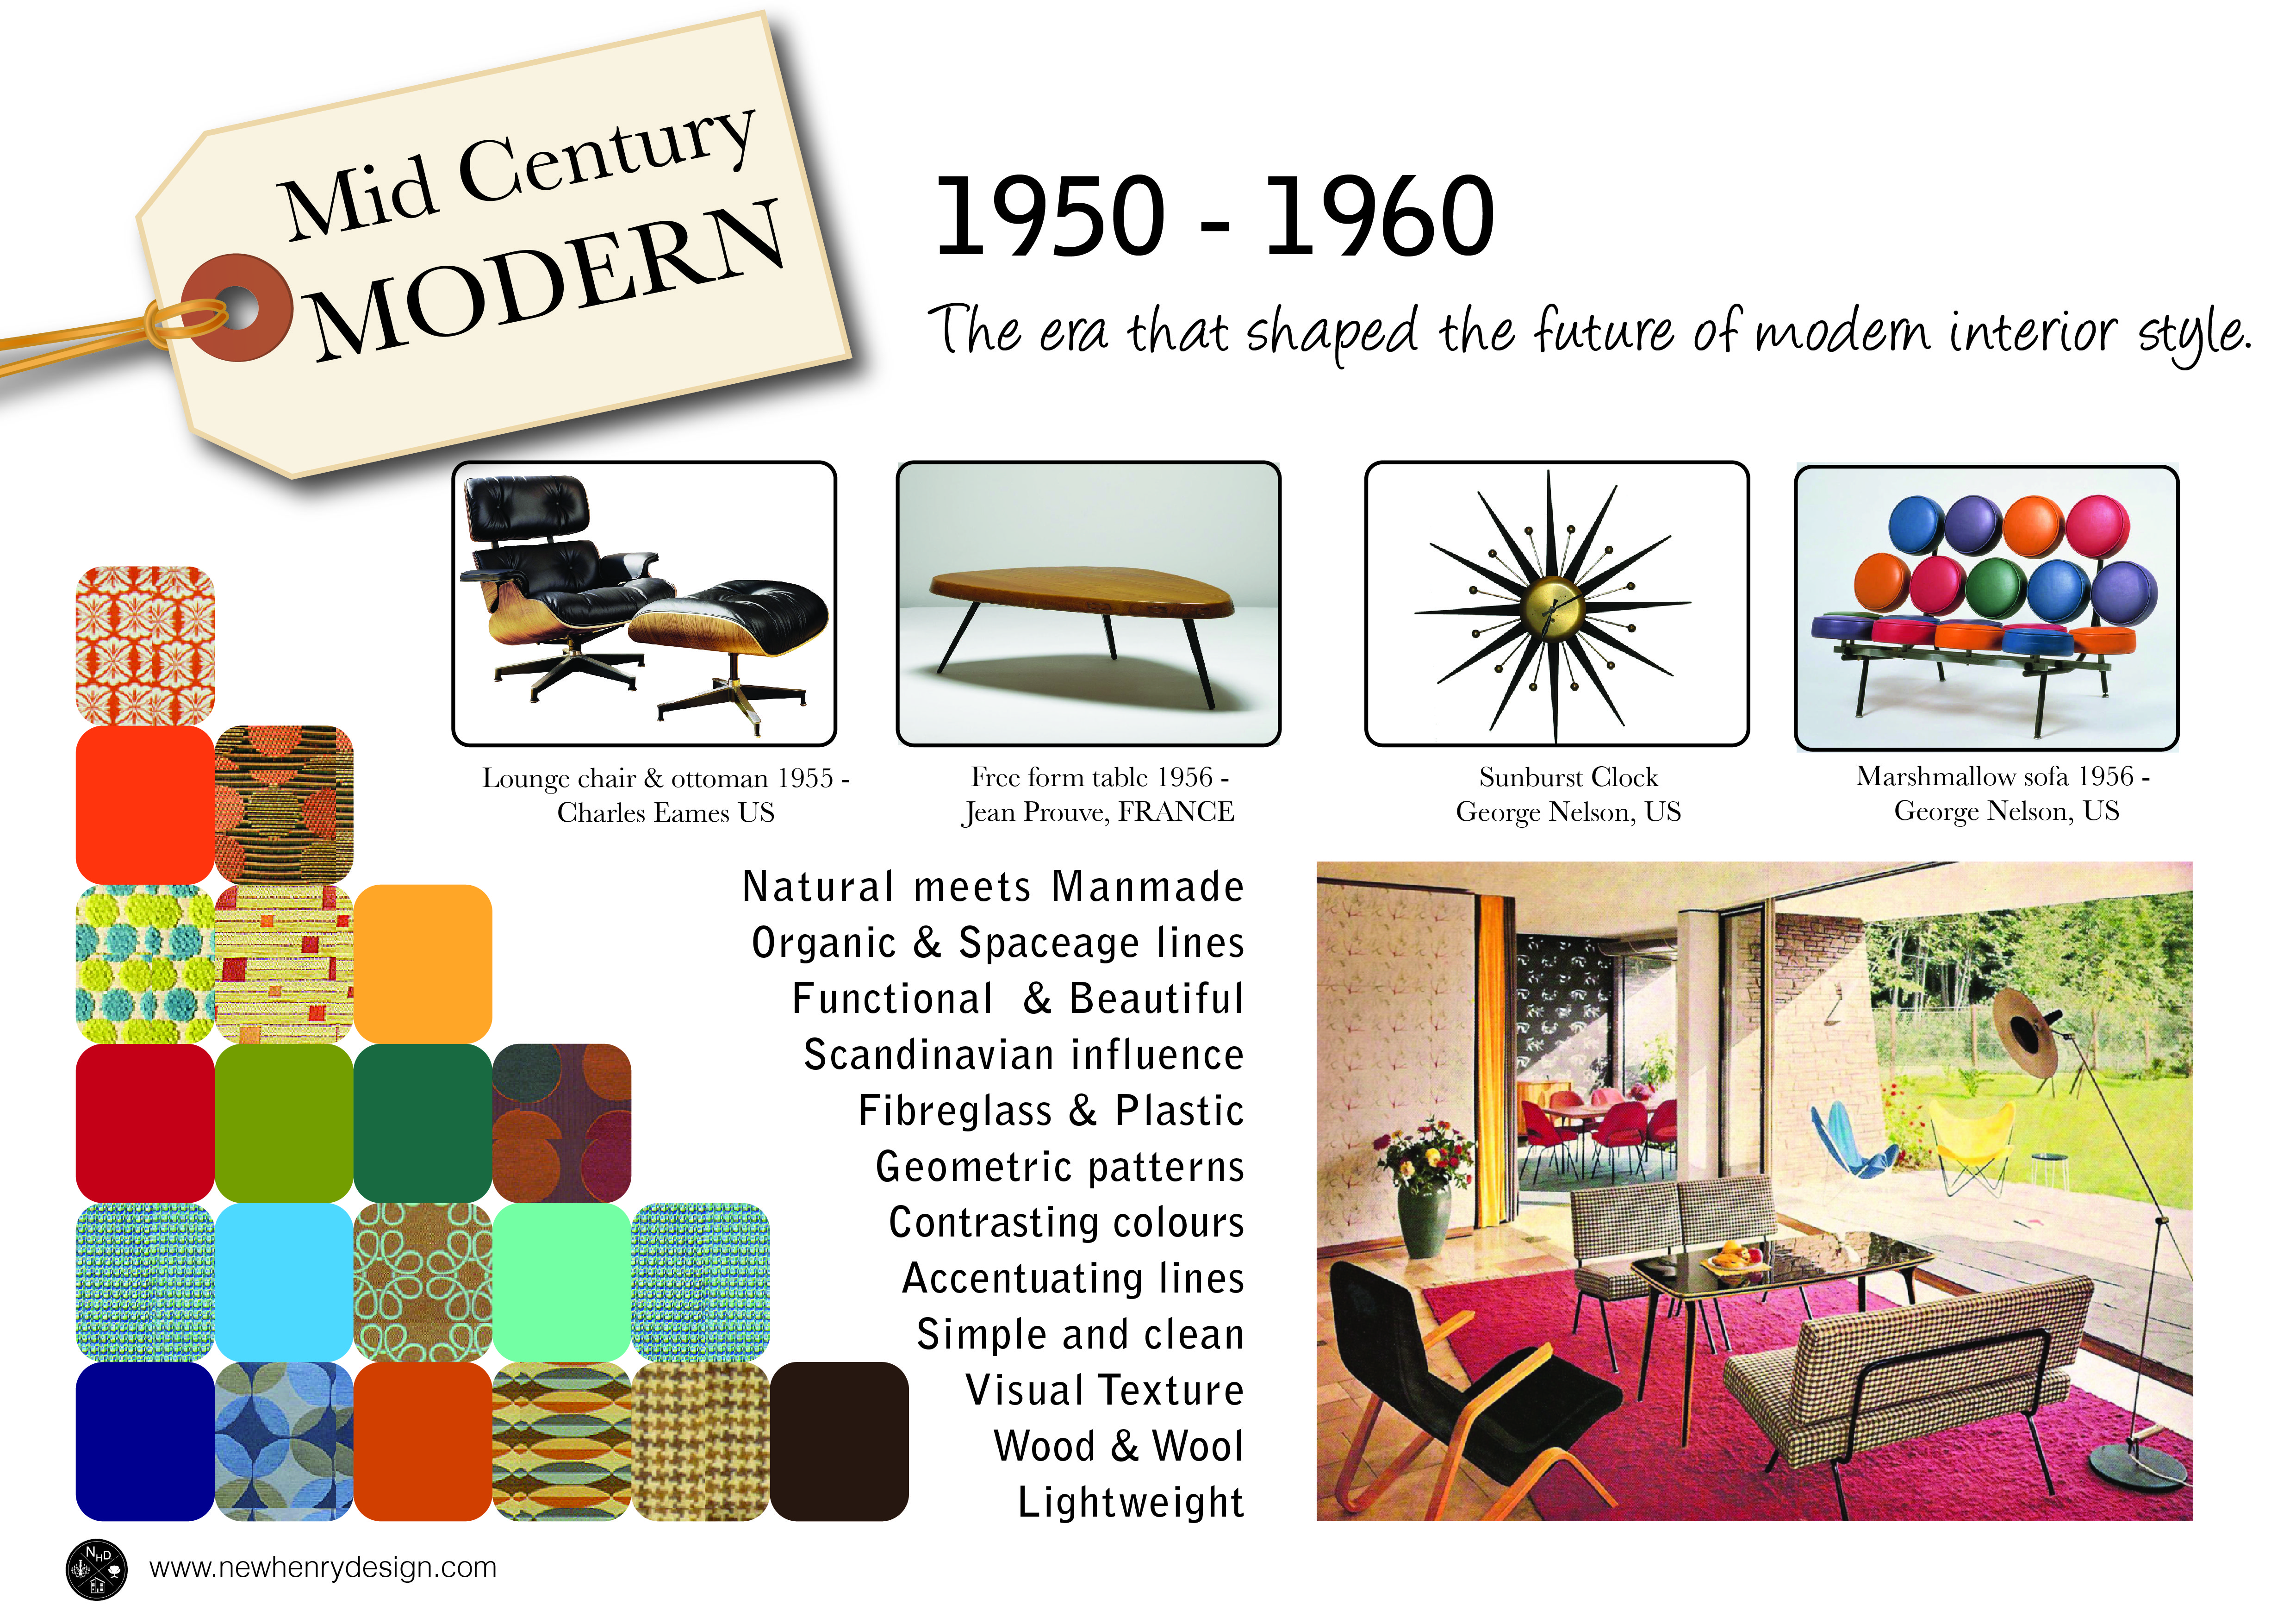 Mid century modern a poster overview new henry design for Mid century modern design principles